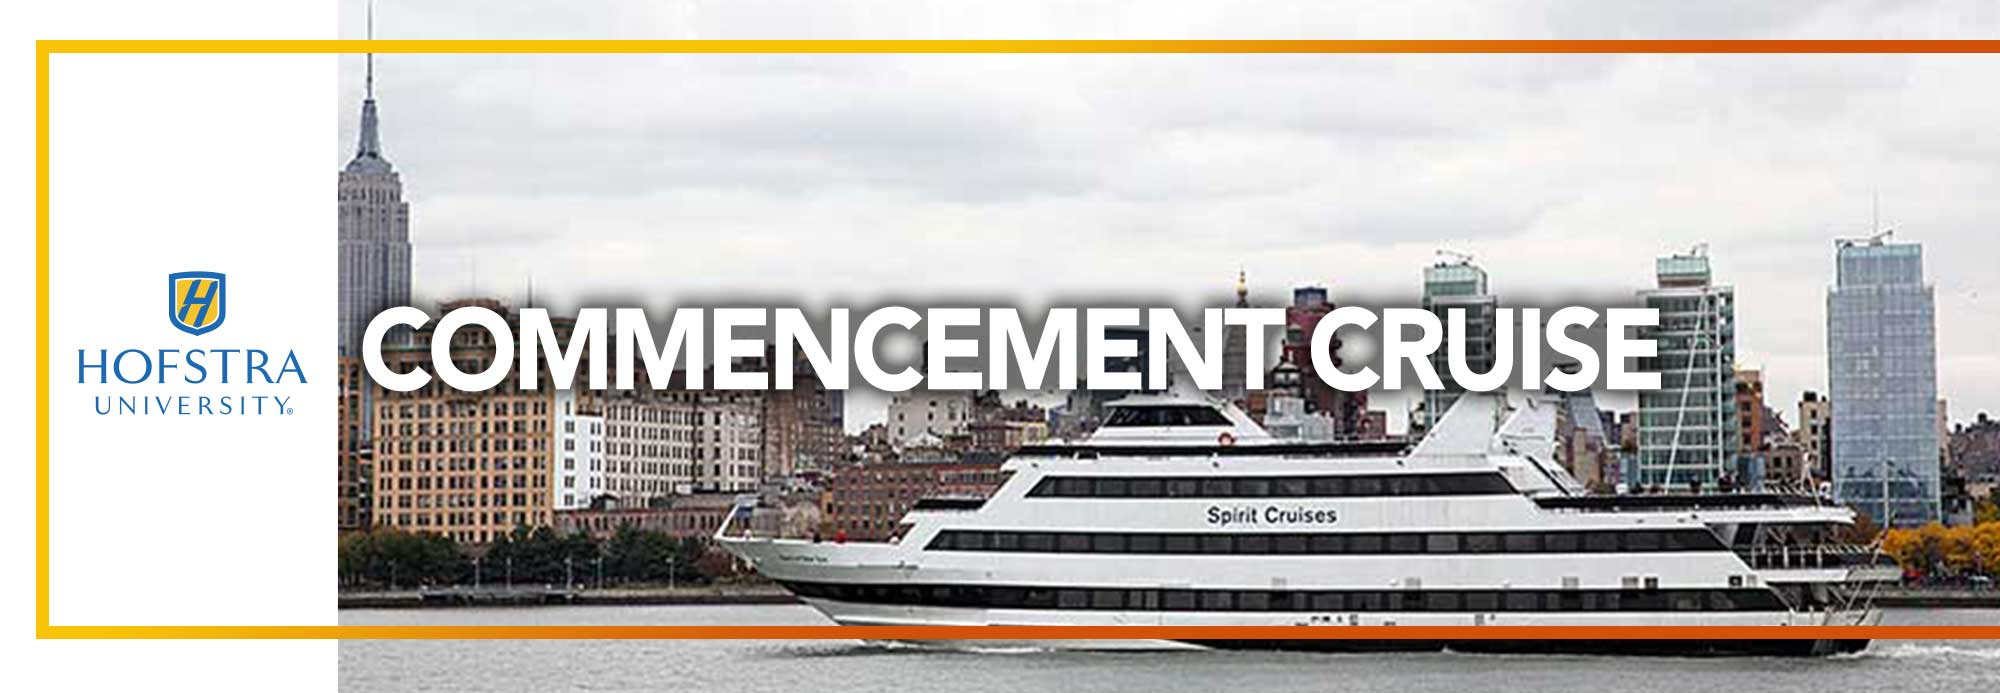 Commencement Cruise